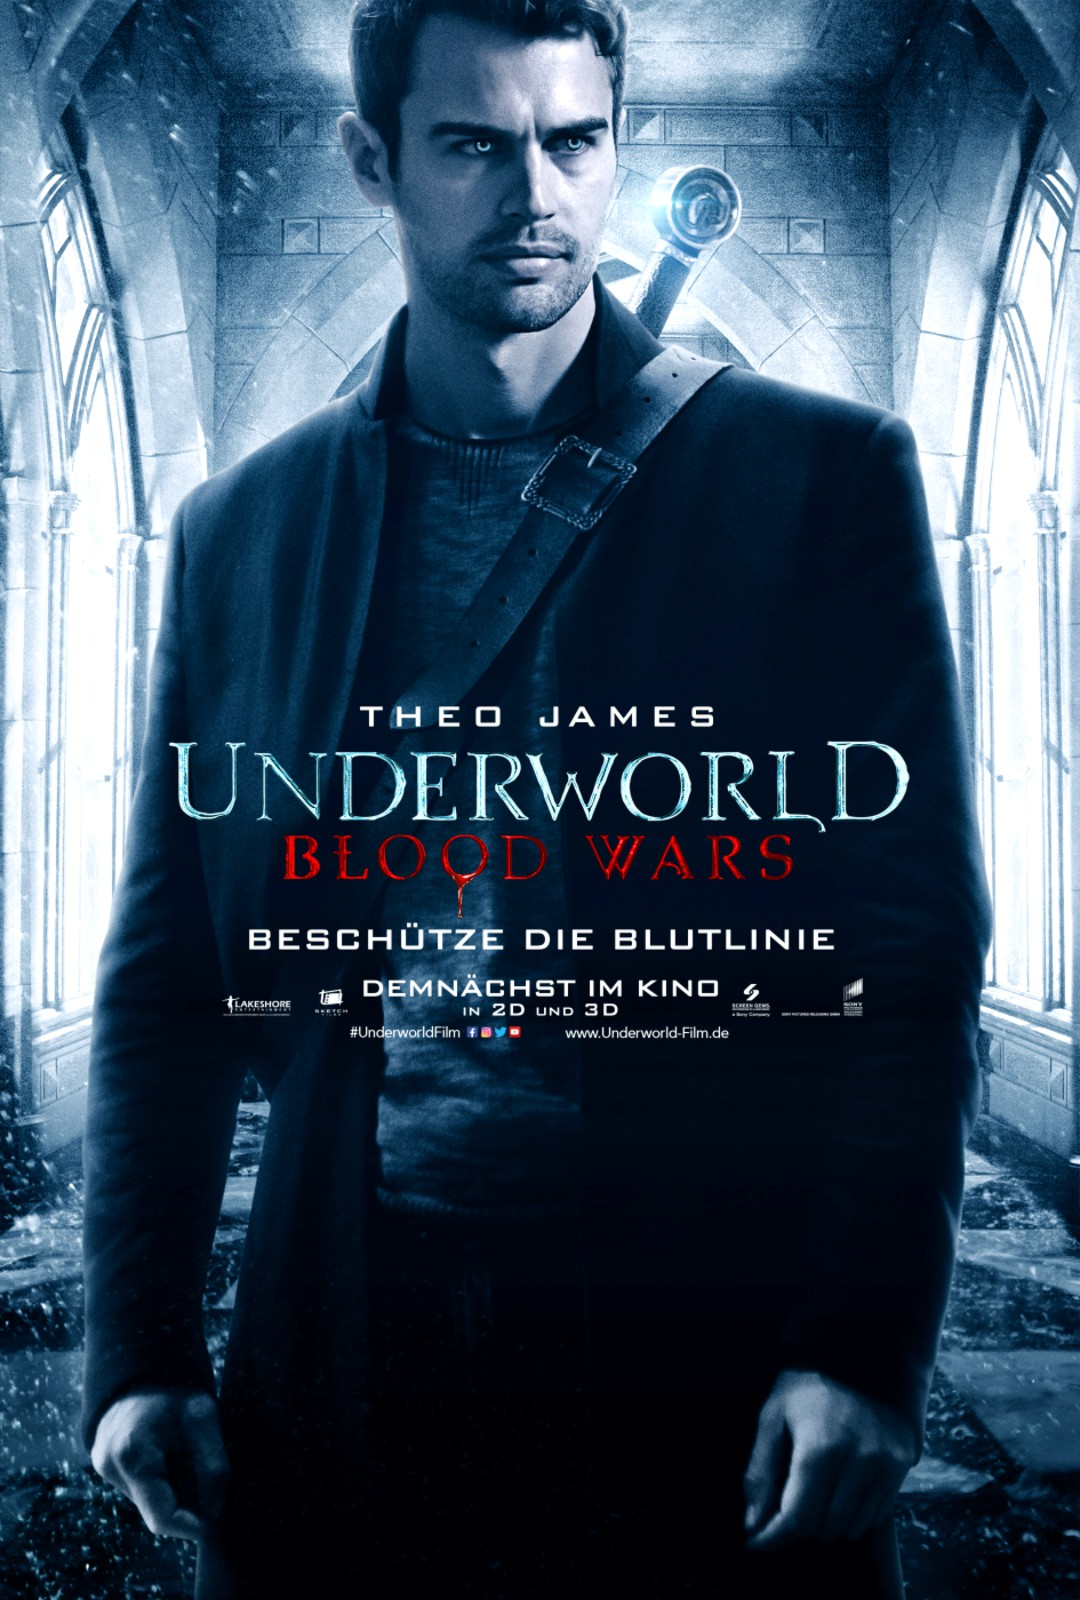 Underworld 5 Blood Wars: 3. deutscher Trailer - Bild 6 von 7